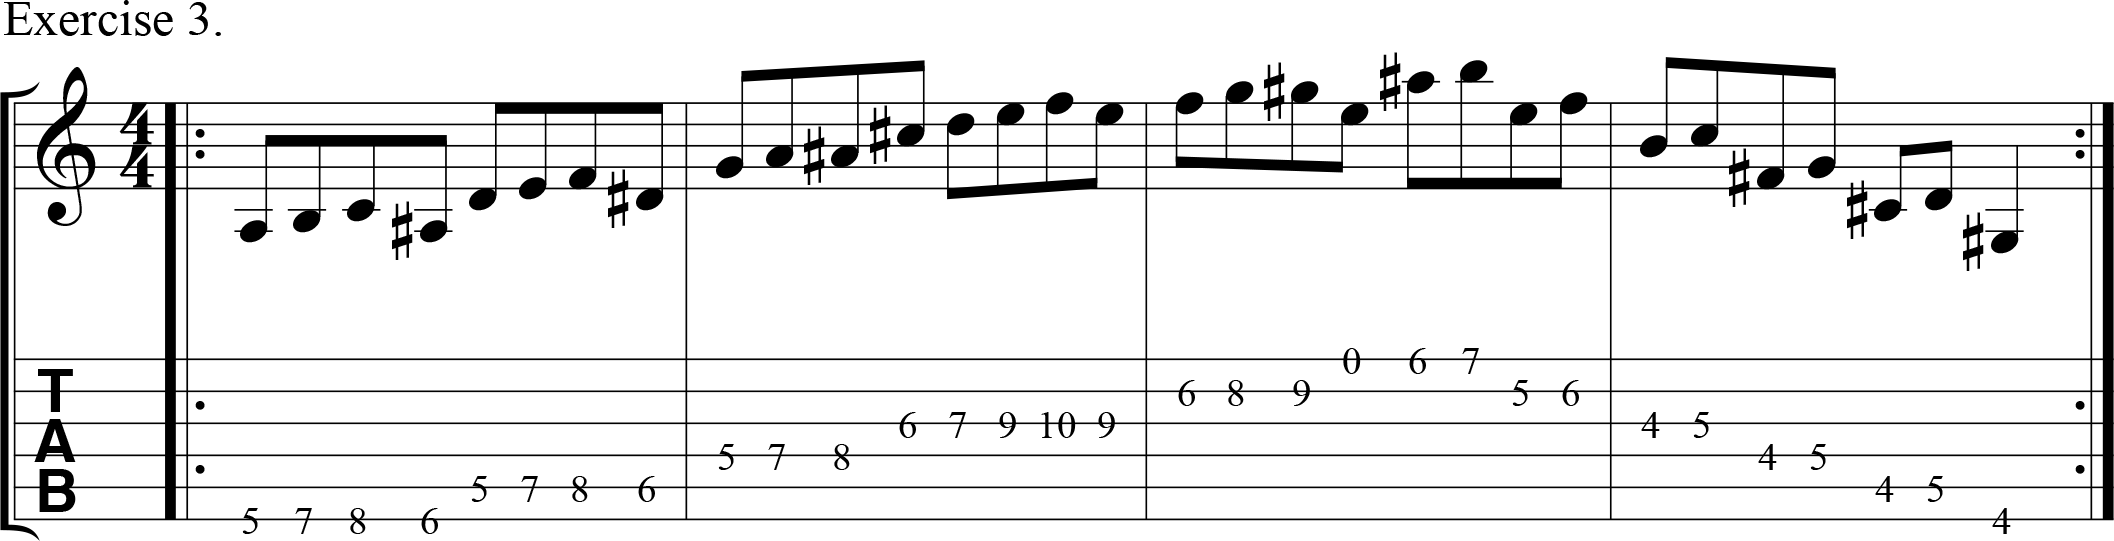 Downpicking using chromatic notes.